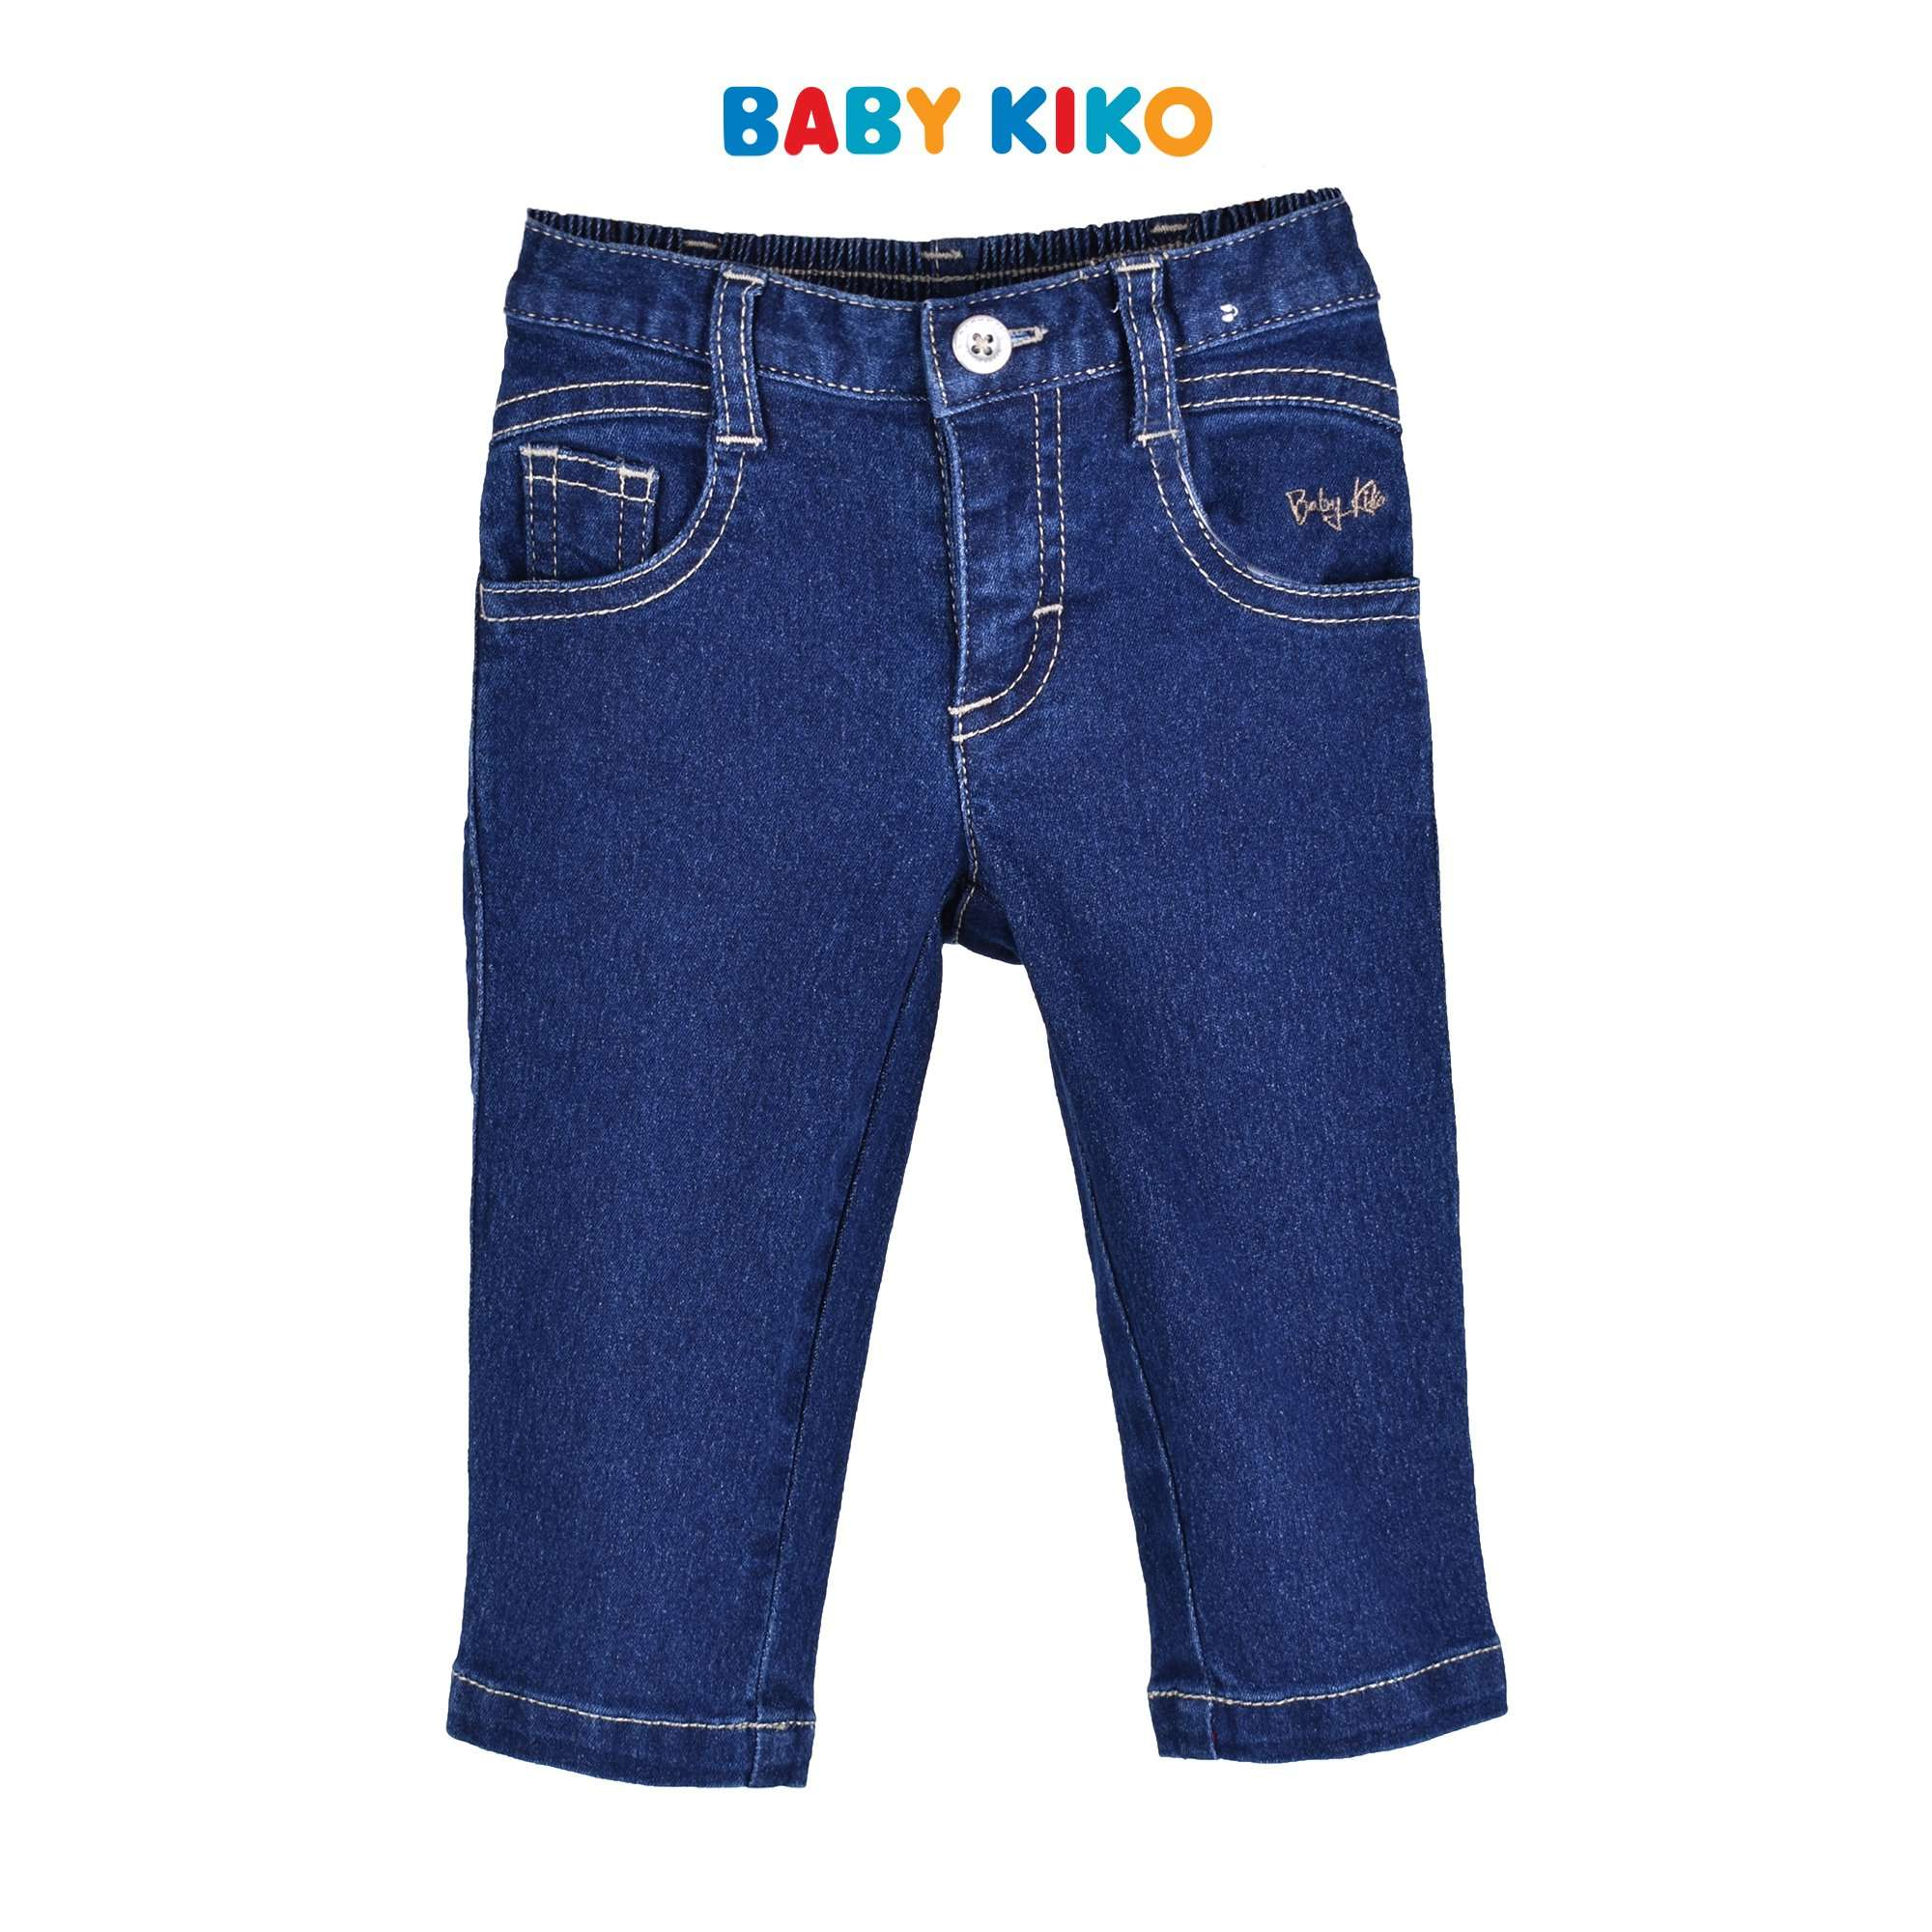 Baby KIKO Baby Boy Denim Long Pants - Blue 330138-211 : Buy Baby KIKO online at CMG.MY